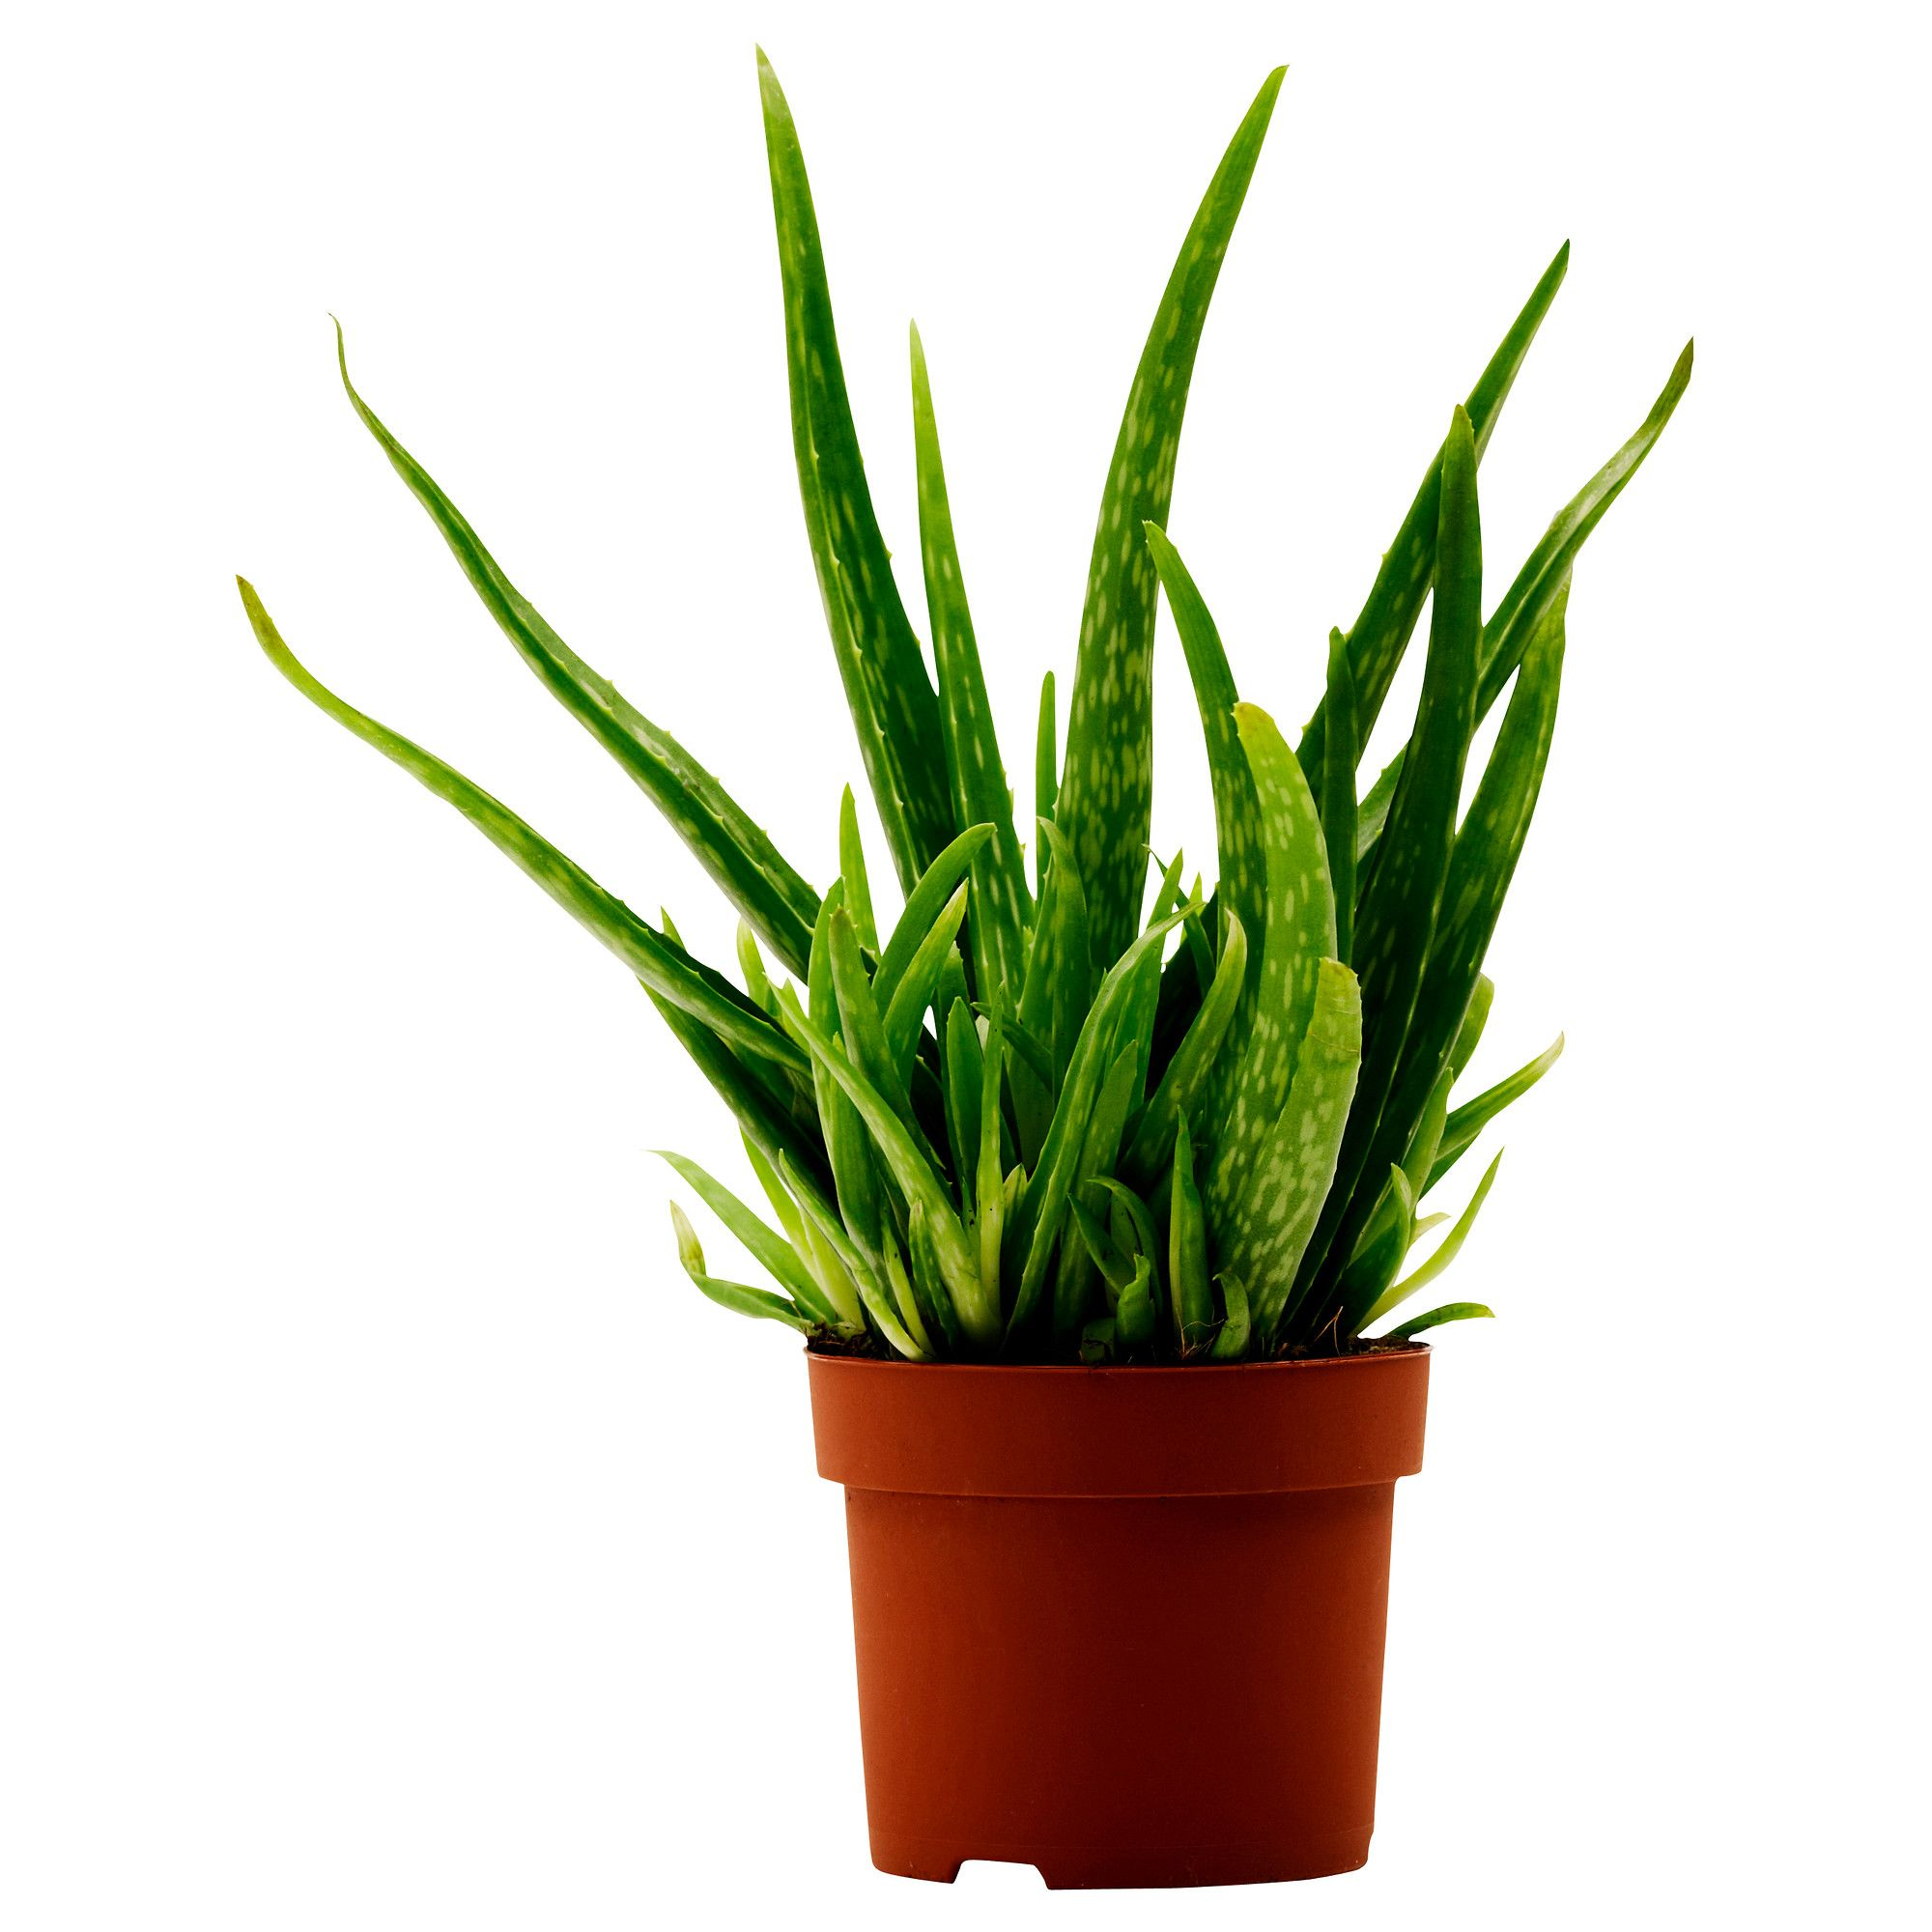 Aloe vera potted plant plants ikea shopping and family for Ikea plantes